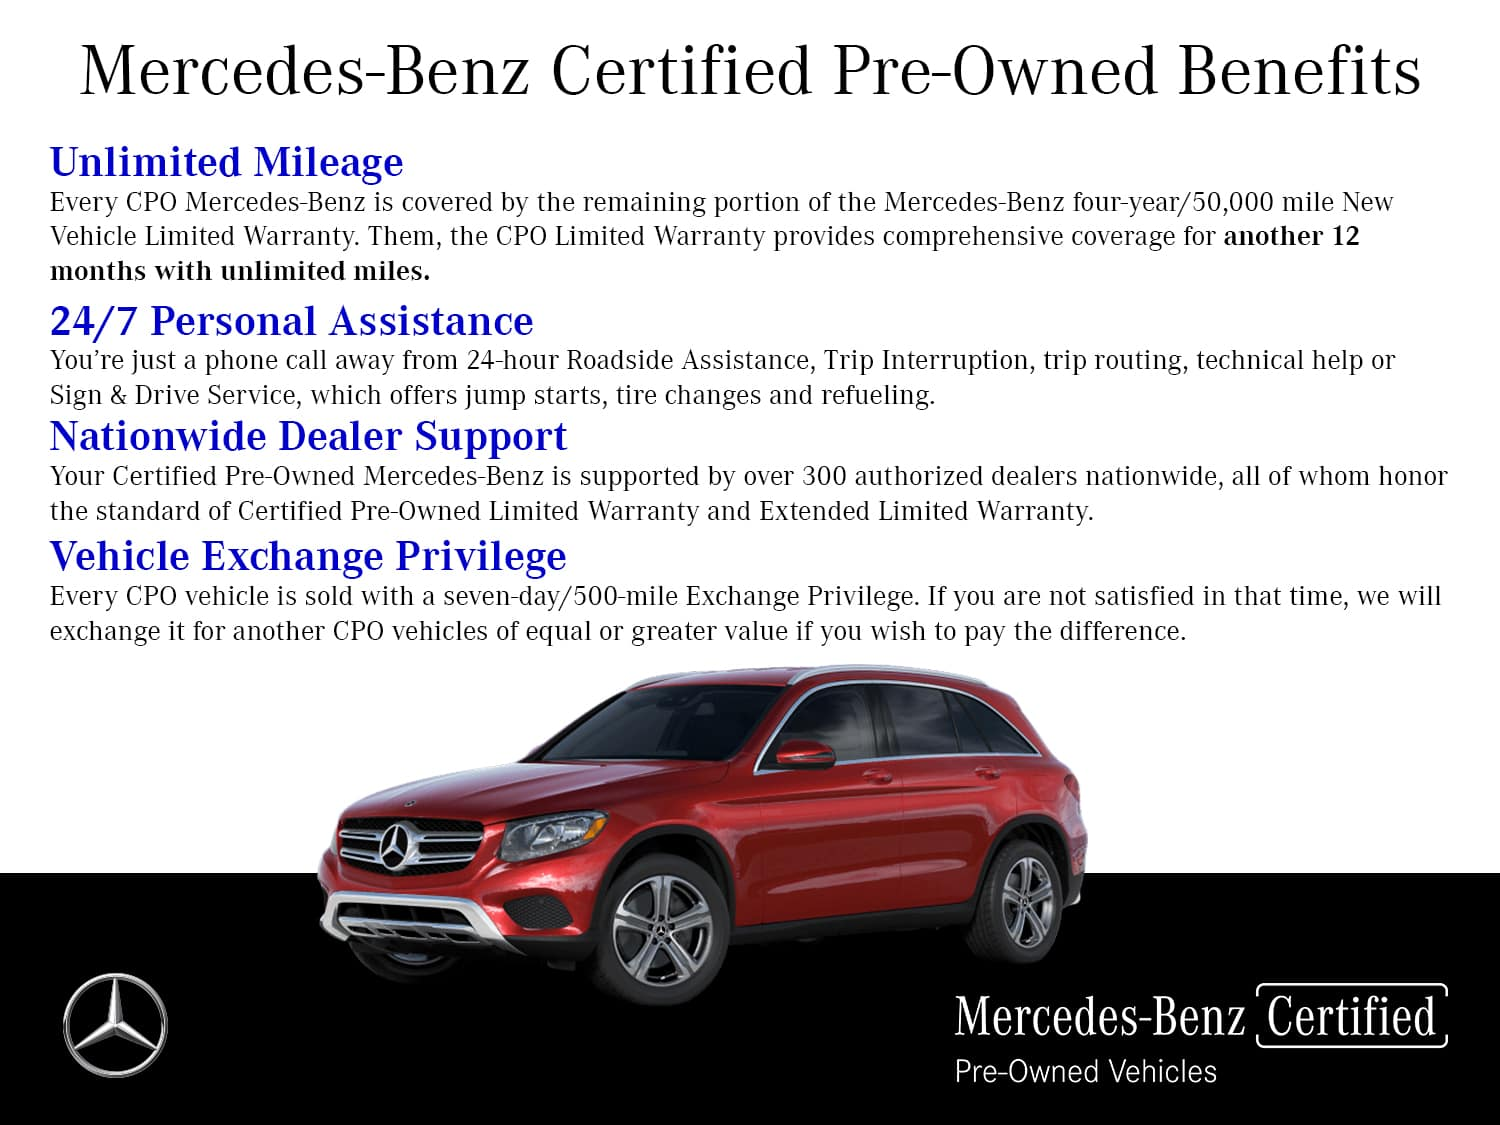 Certified Pre-Owned by Mercedes-Benz. The benefits of ownership.